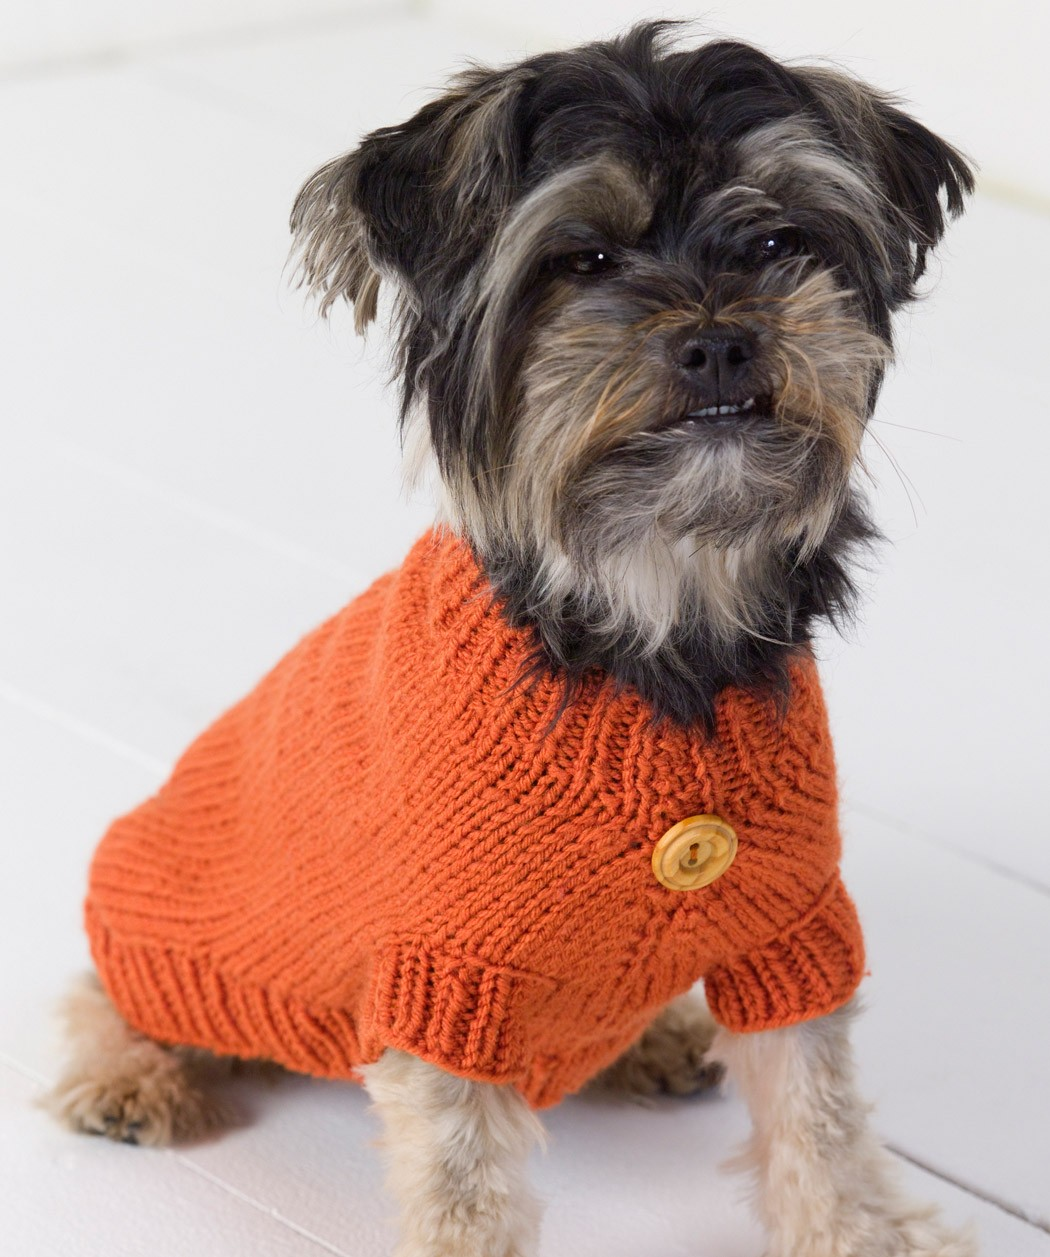 Free Dog Sweater Knitting Patterns : Dog Sweater Knitting Pattern Cute Small Dog Sweater Dog Breeds Picture